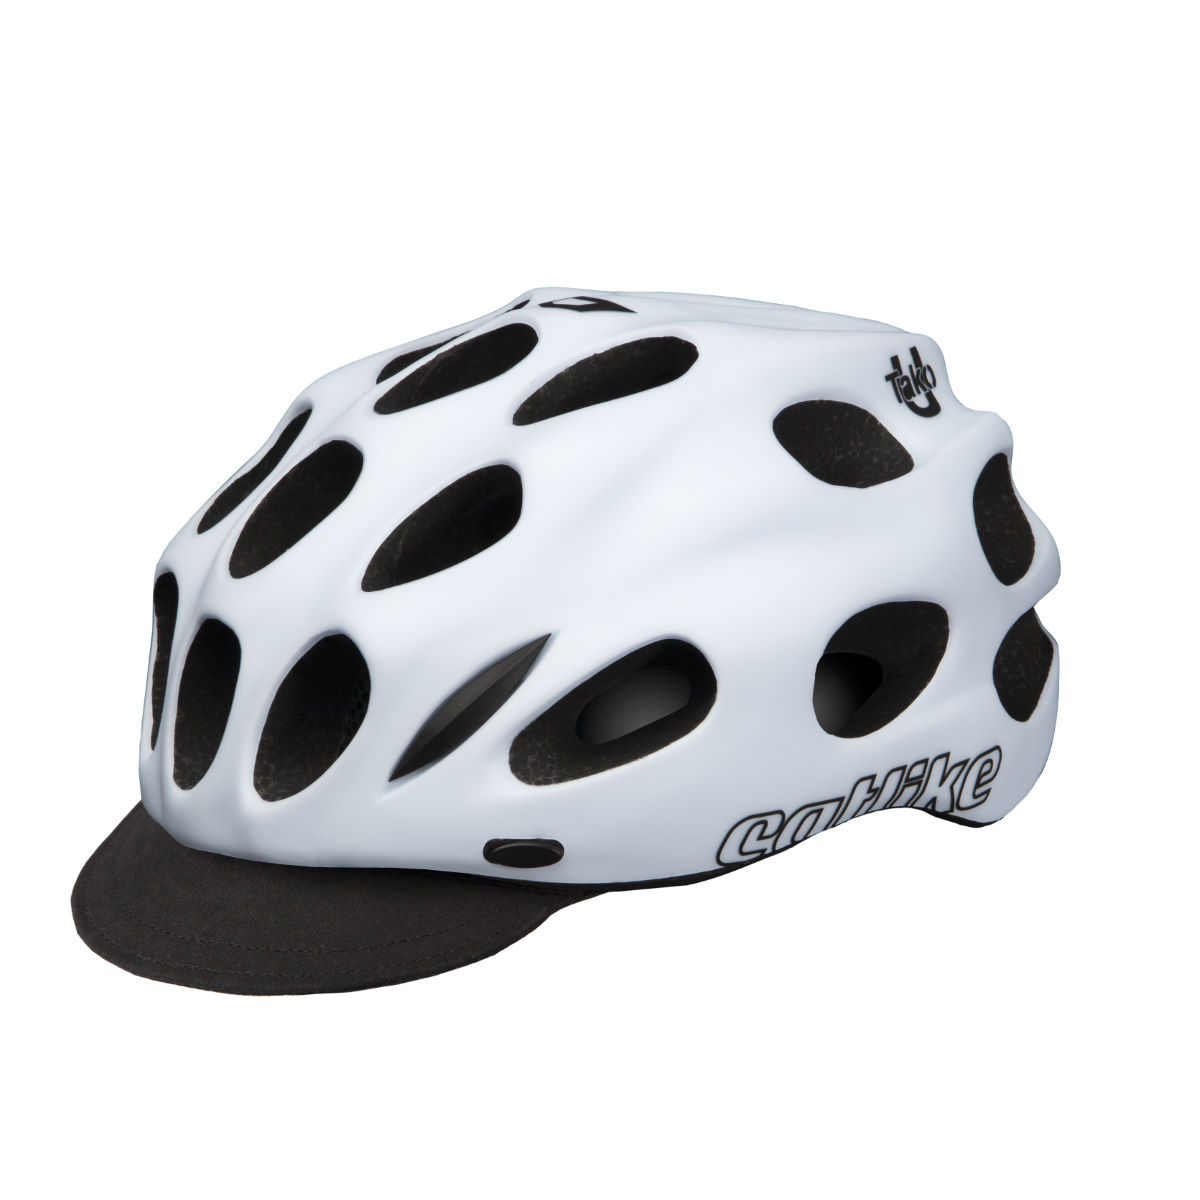 Casque Catlike Tako Urban - Medium Blanc Casques de route